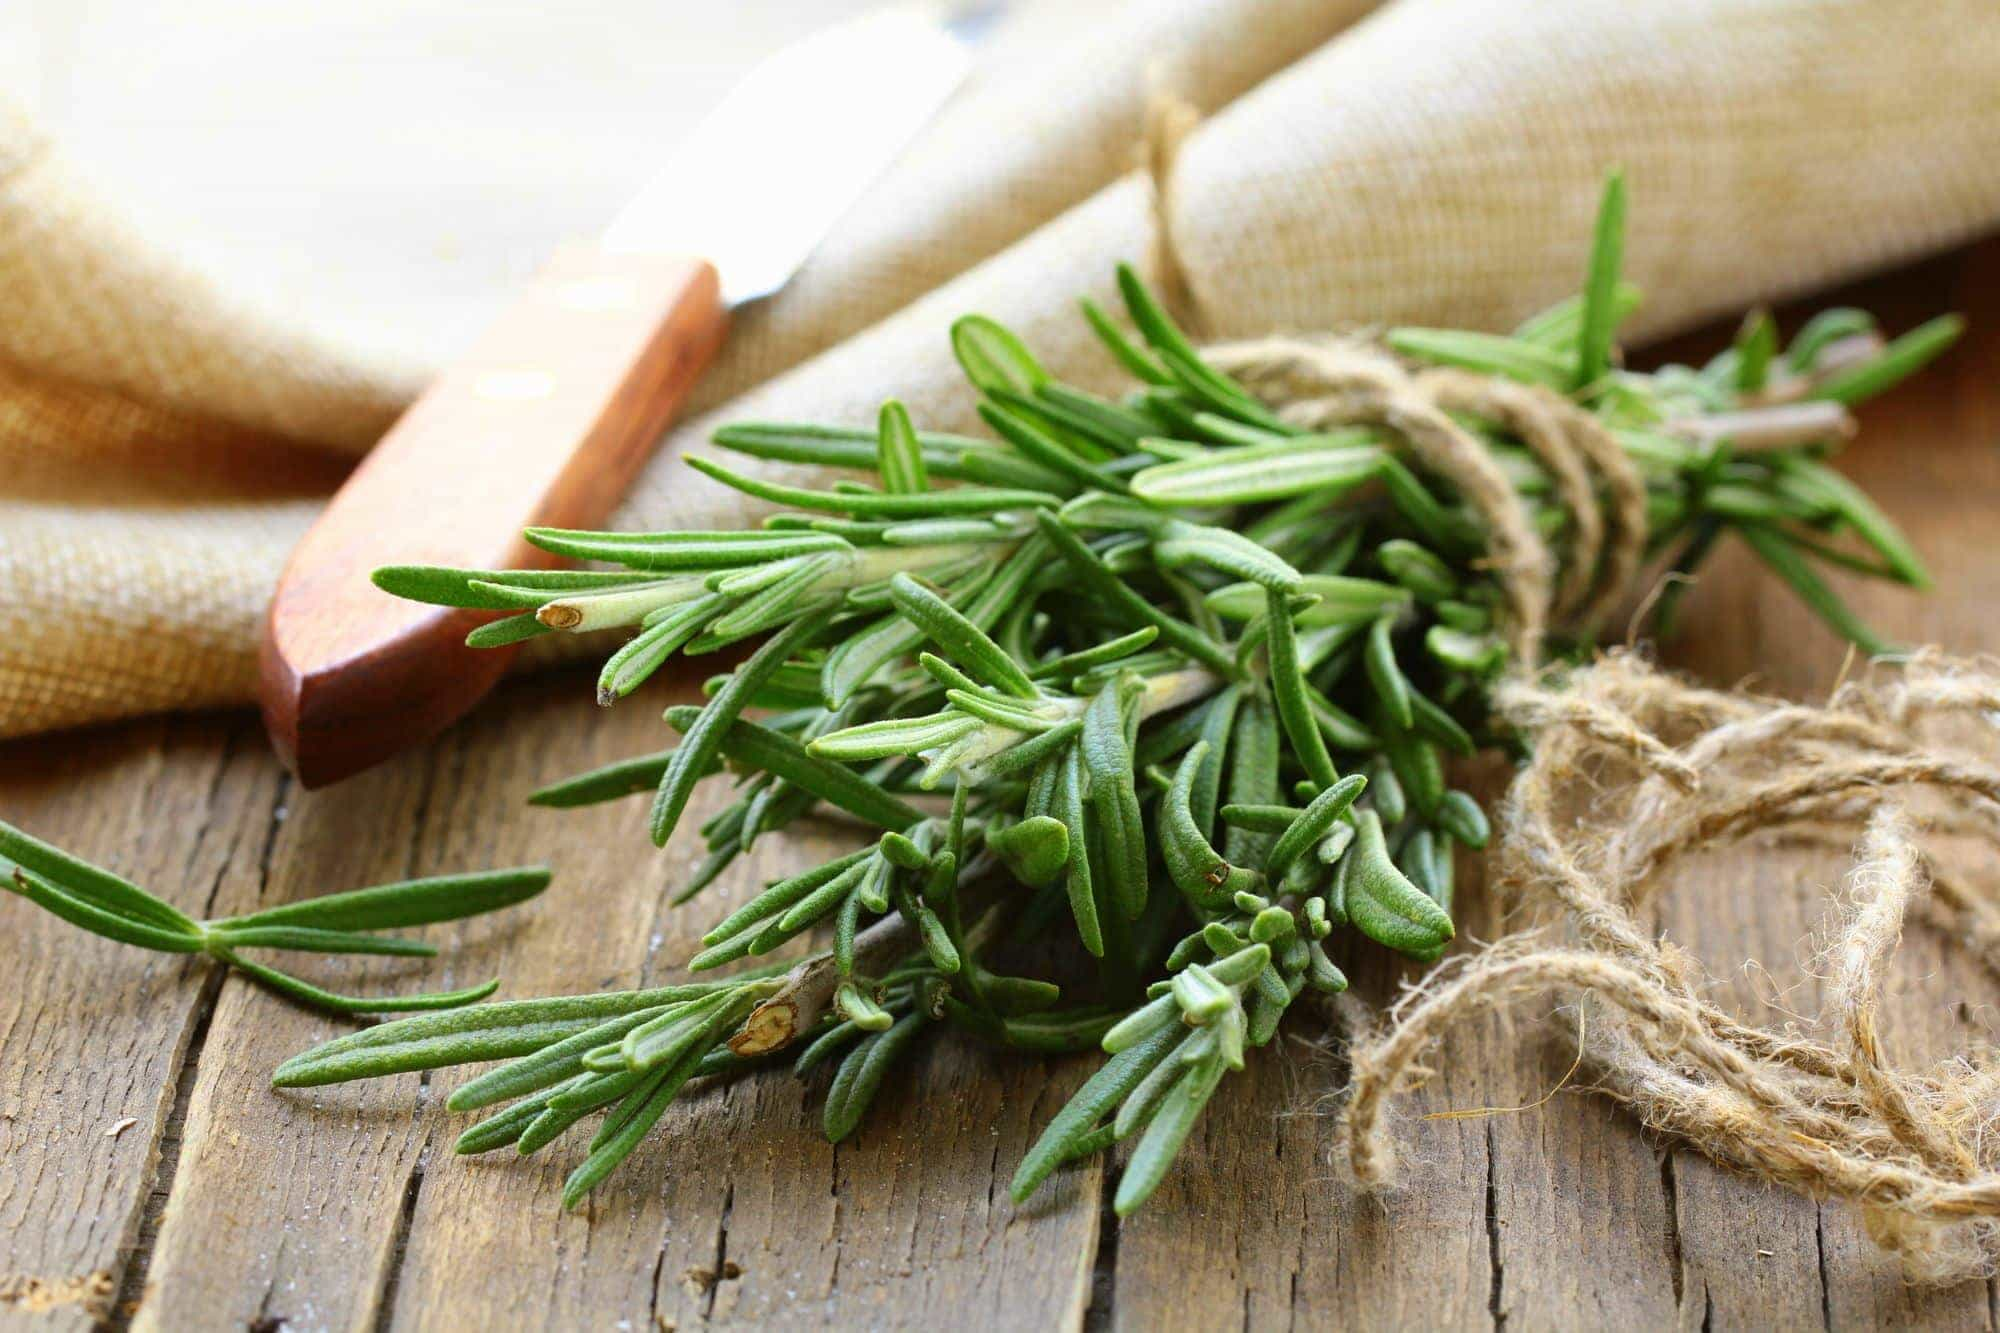 Treating Hair Loss with Rosemary